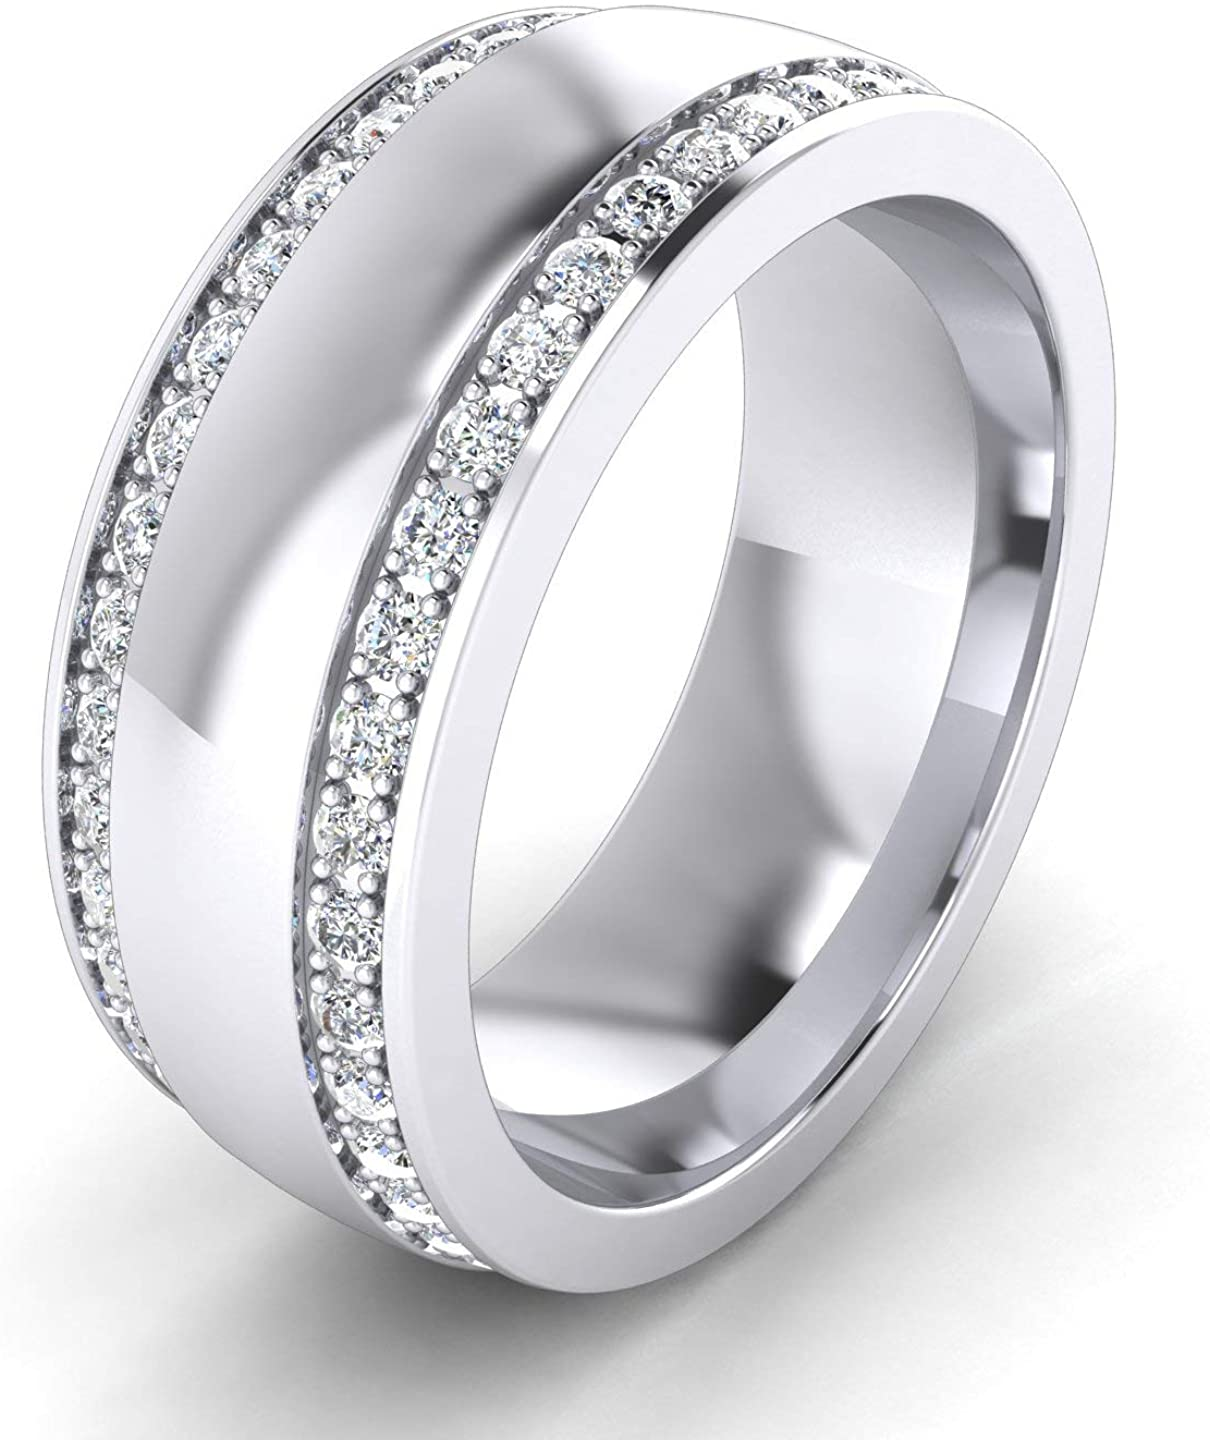 Super Heavy Sterling Silver 8mm Domed Double Row Simulated Diamond Wedding Band Full Eternity Ring